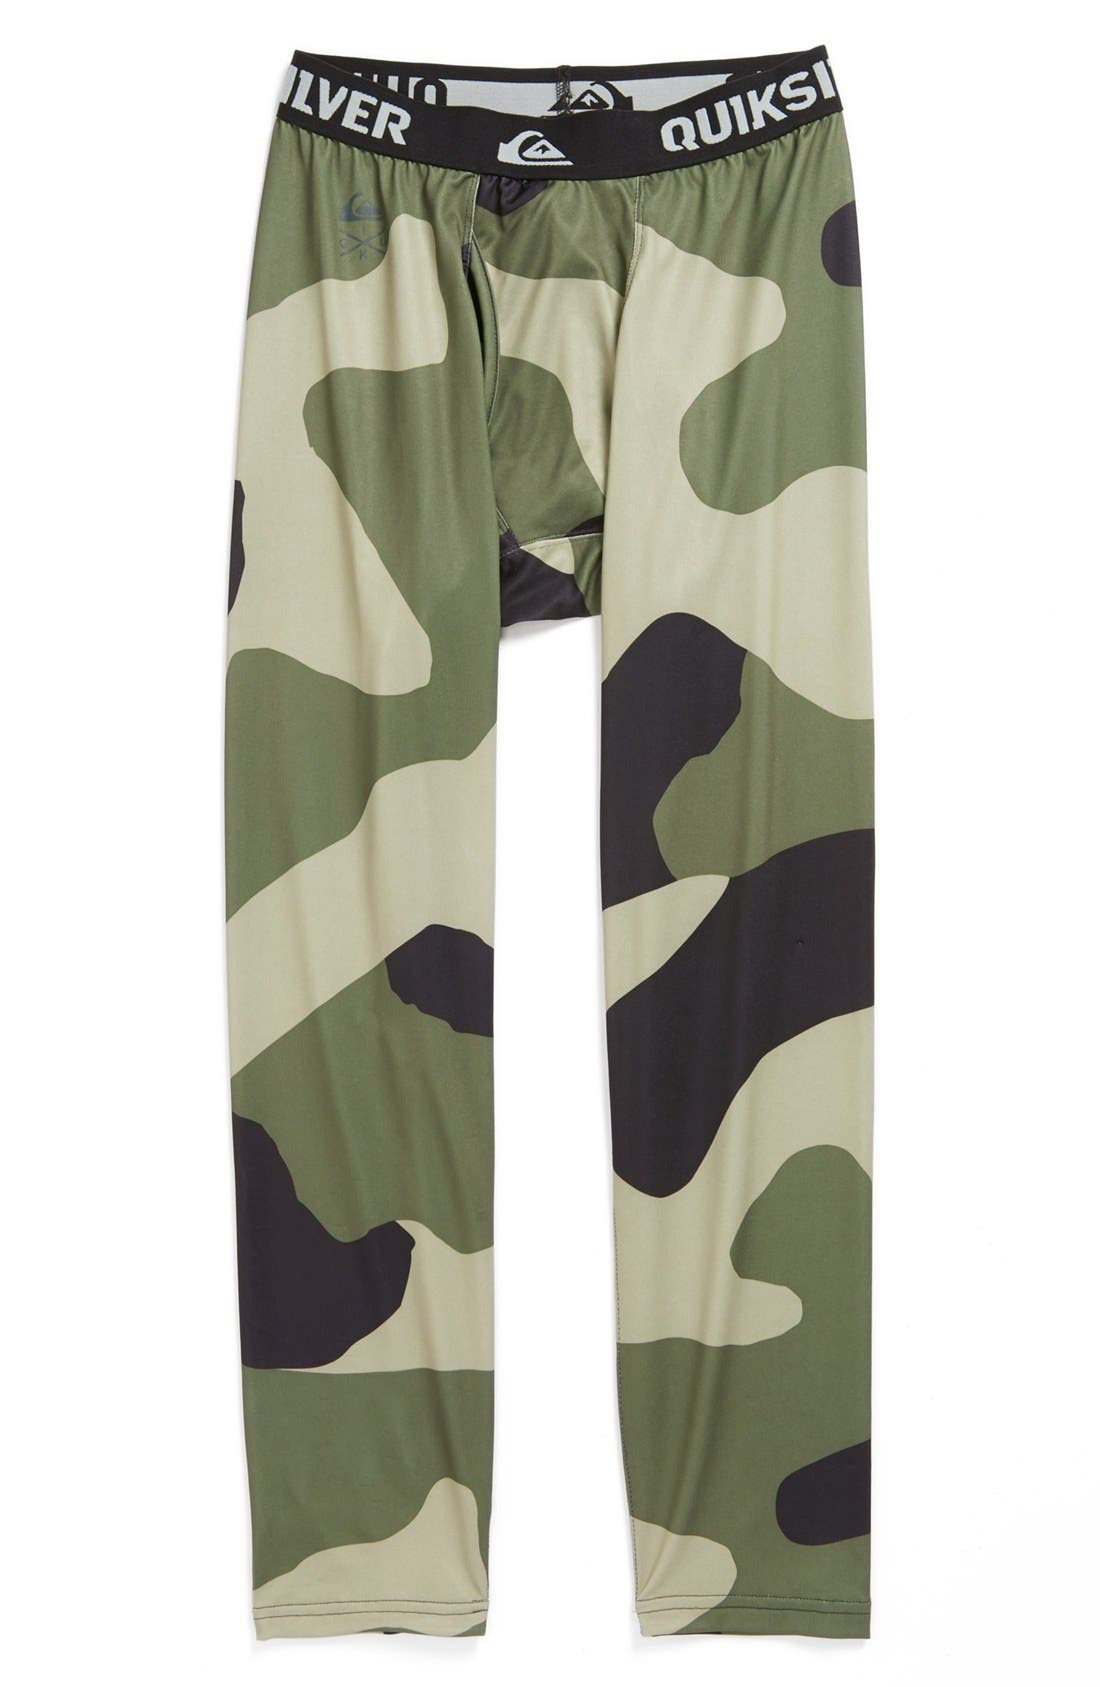 Alternate Image 1 Selected - Quiksilver 'Lloyd 1st Layer' Pants (Little Boys & Big Boys)